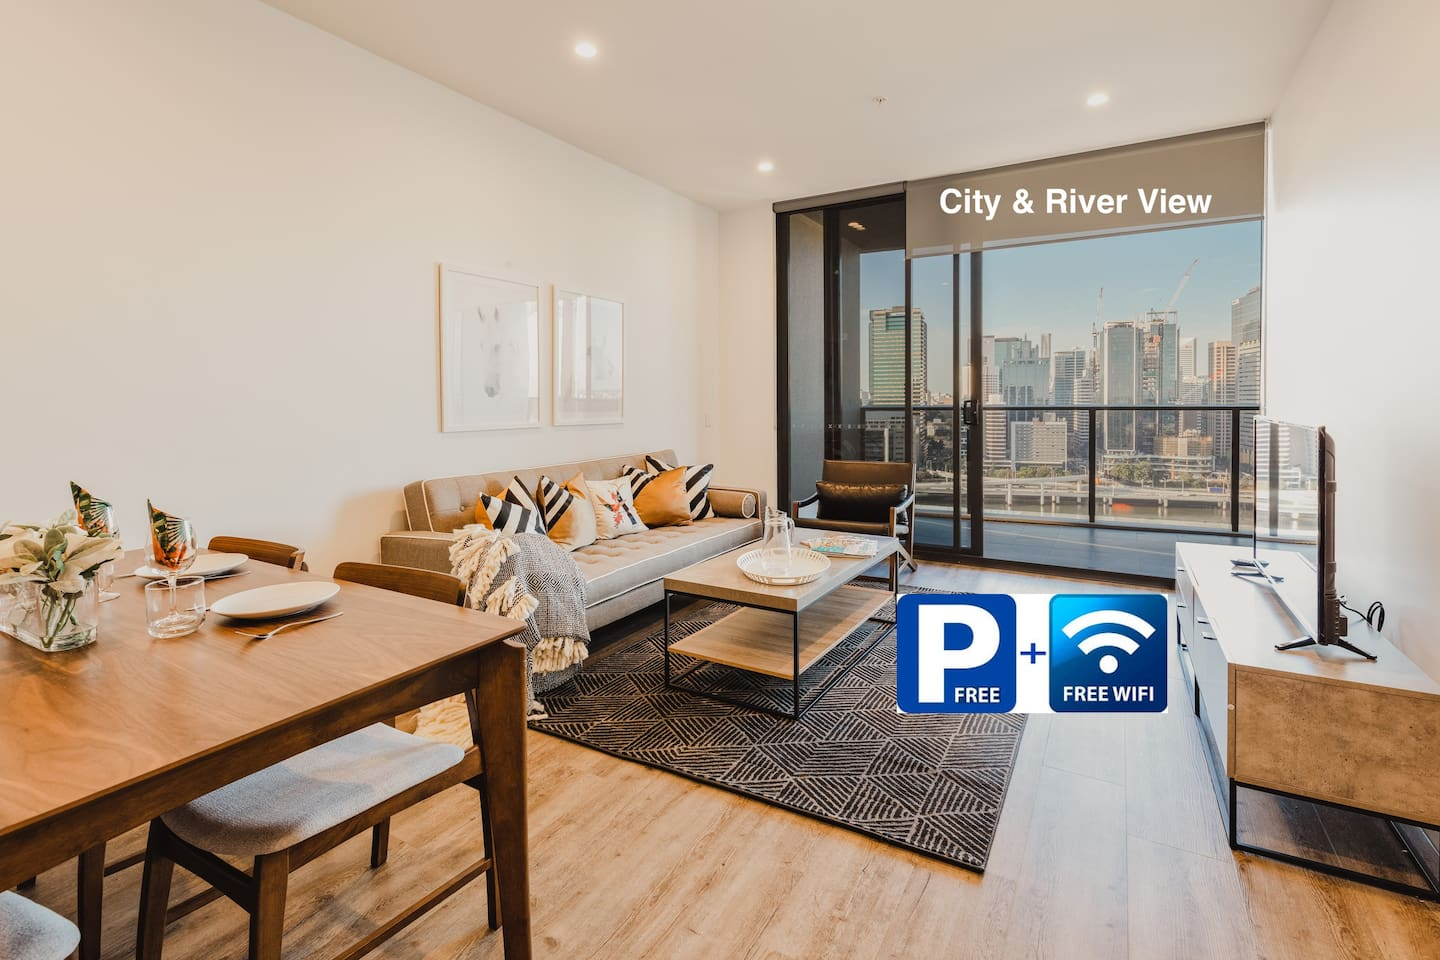 City and river view from your living room and balcony